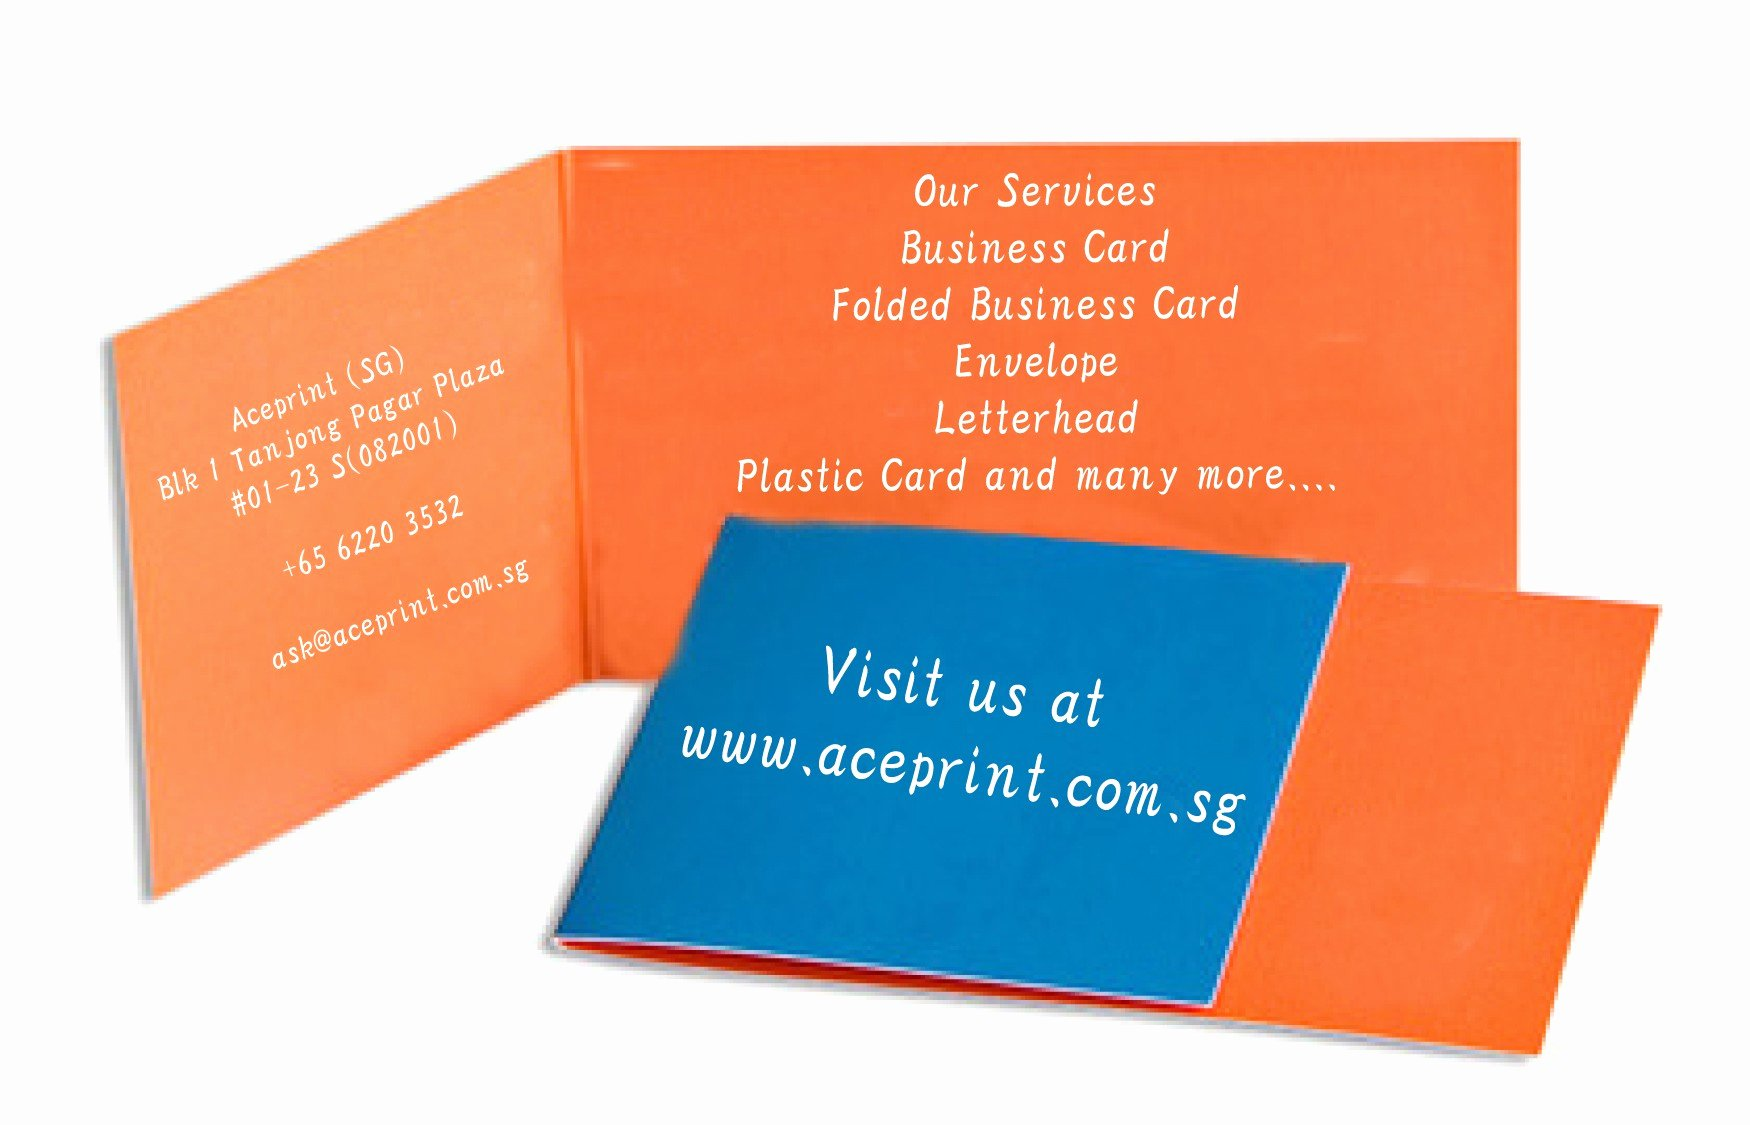 Foldable Business Card Template New Foldable Business Card Template